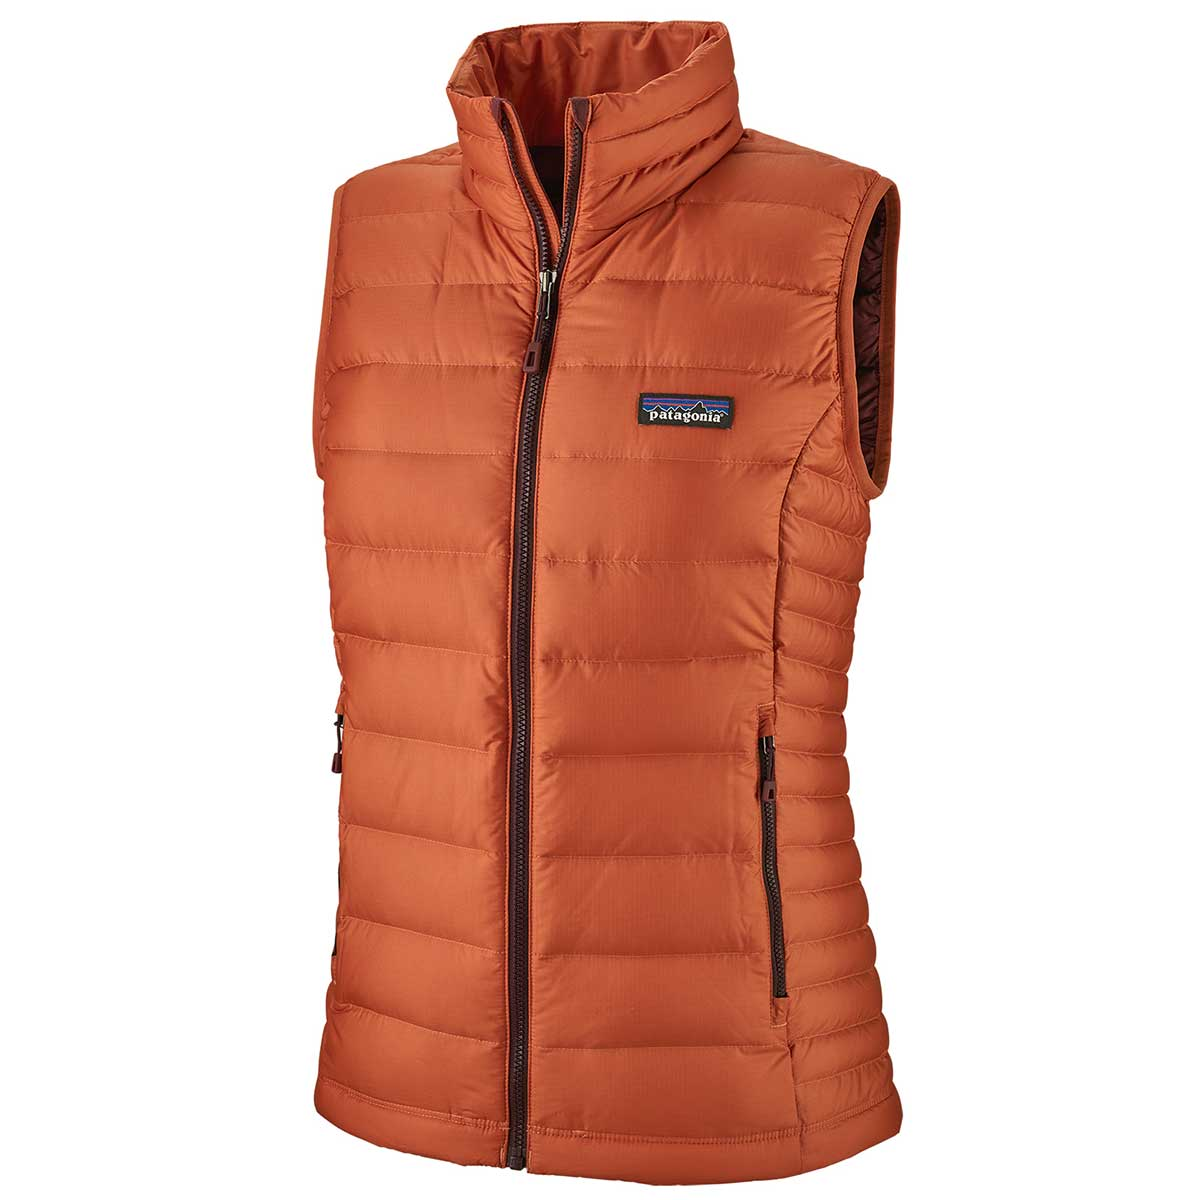 Patagonia women's Down Sweater Vest in Sunset Orange front view